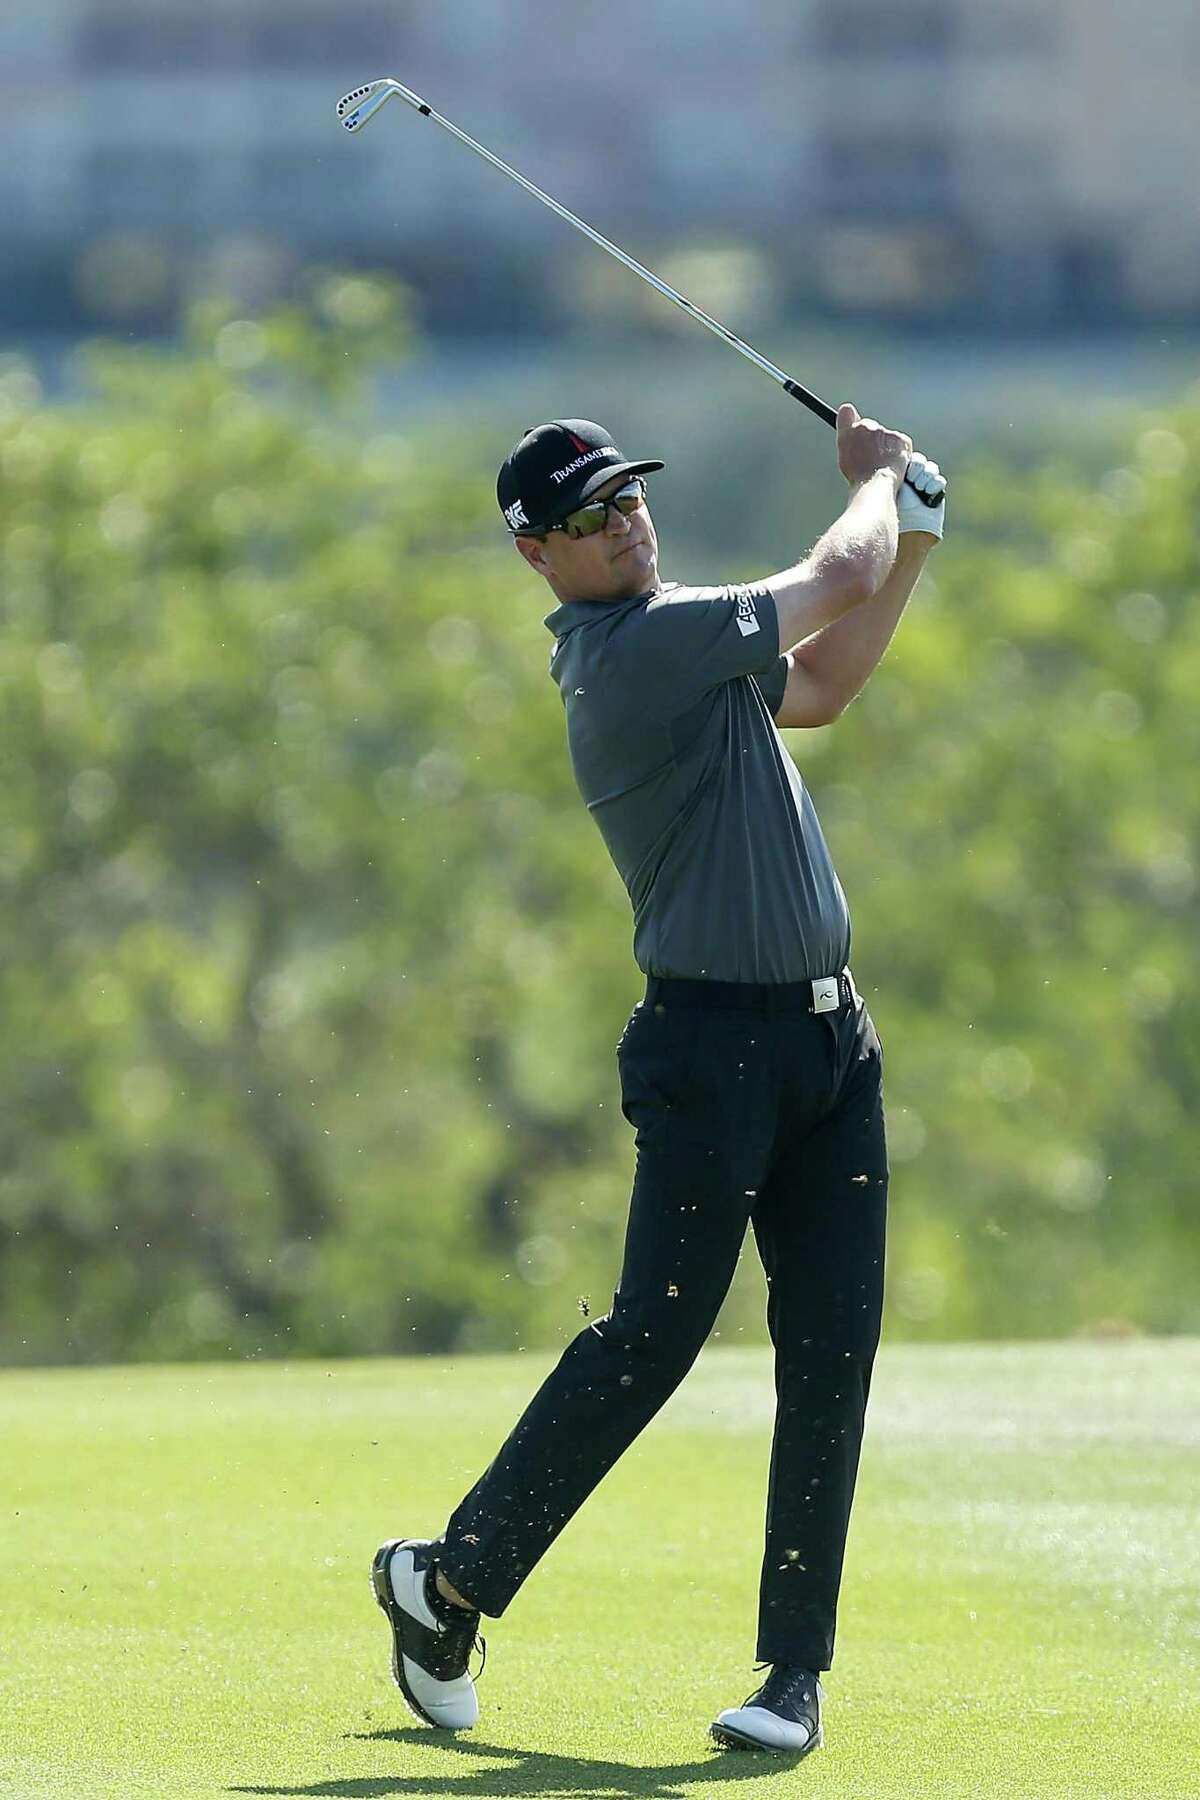 Zach Johnson, a former Masters and British Open champion, returns to TPC River Highlands for the 13th time. He has two previous top-six finishes.